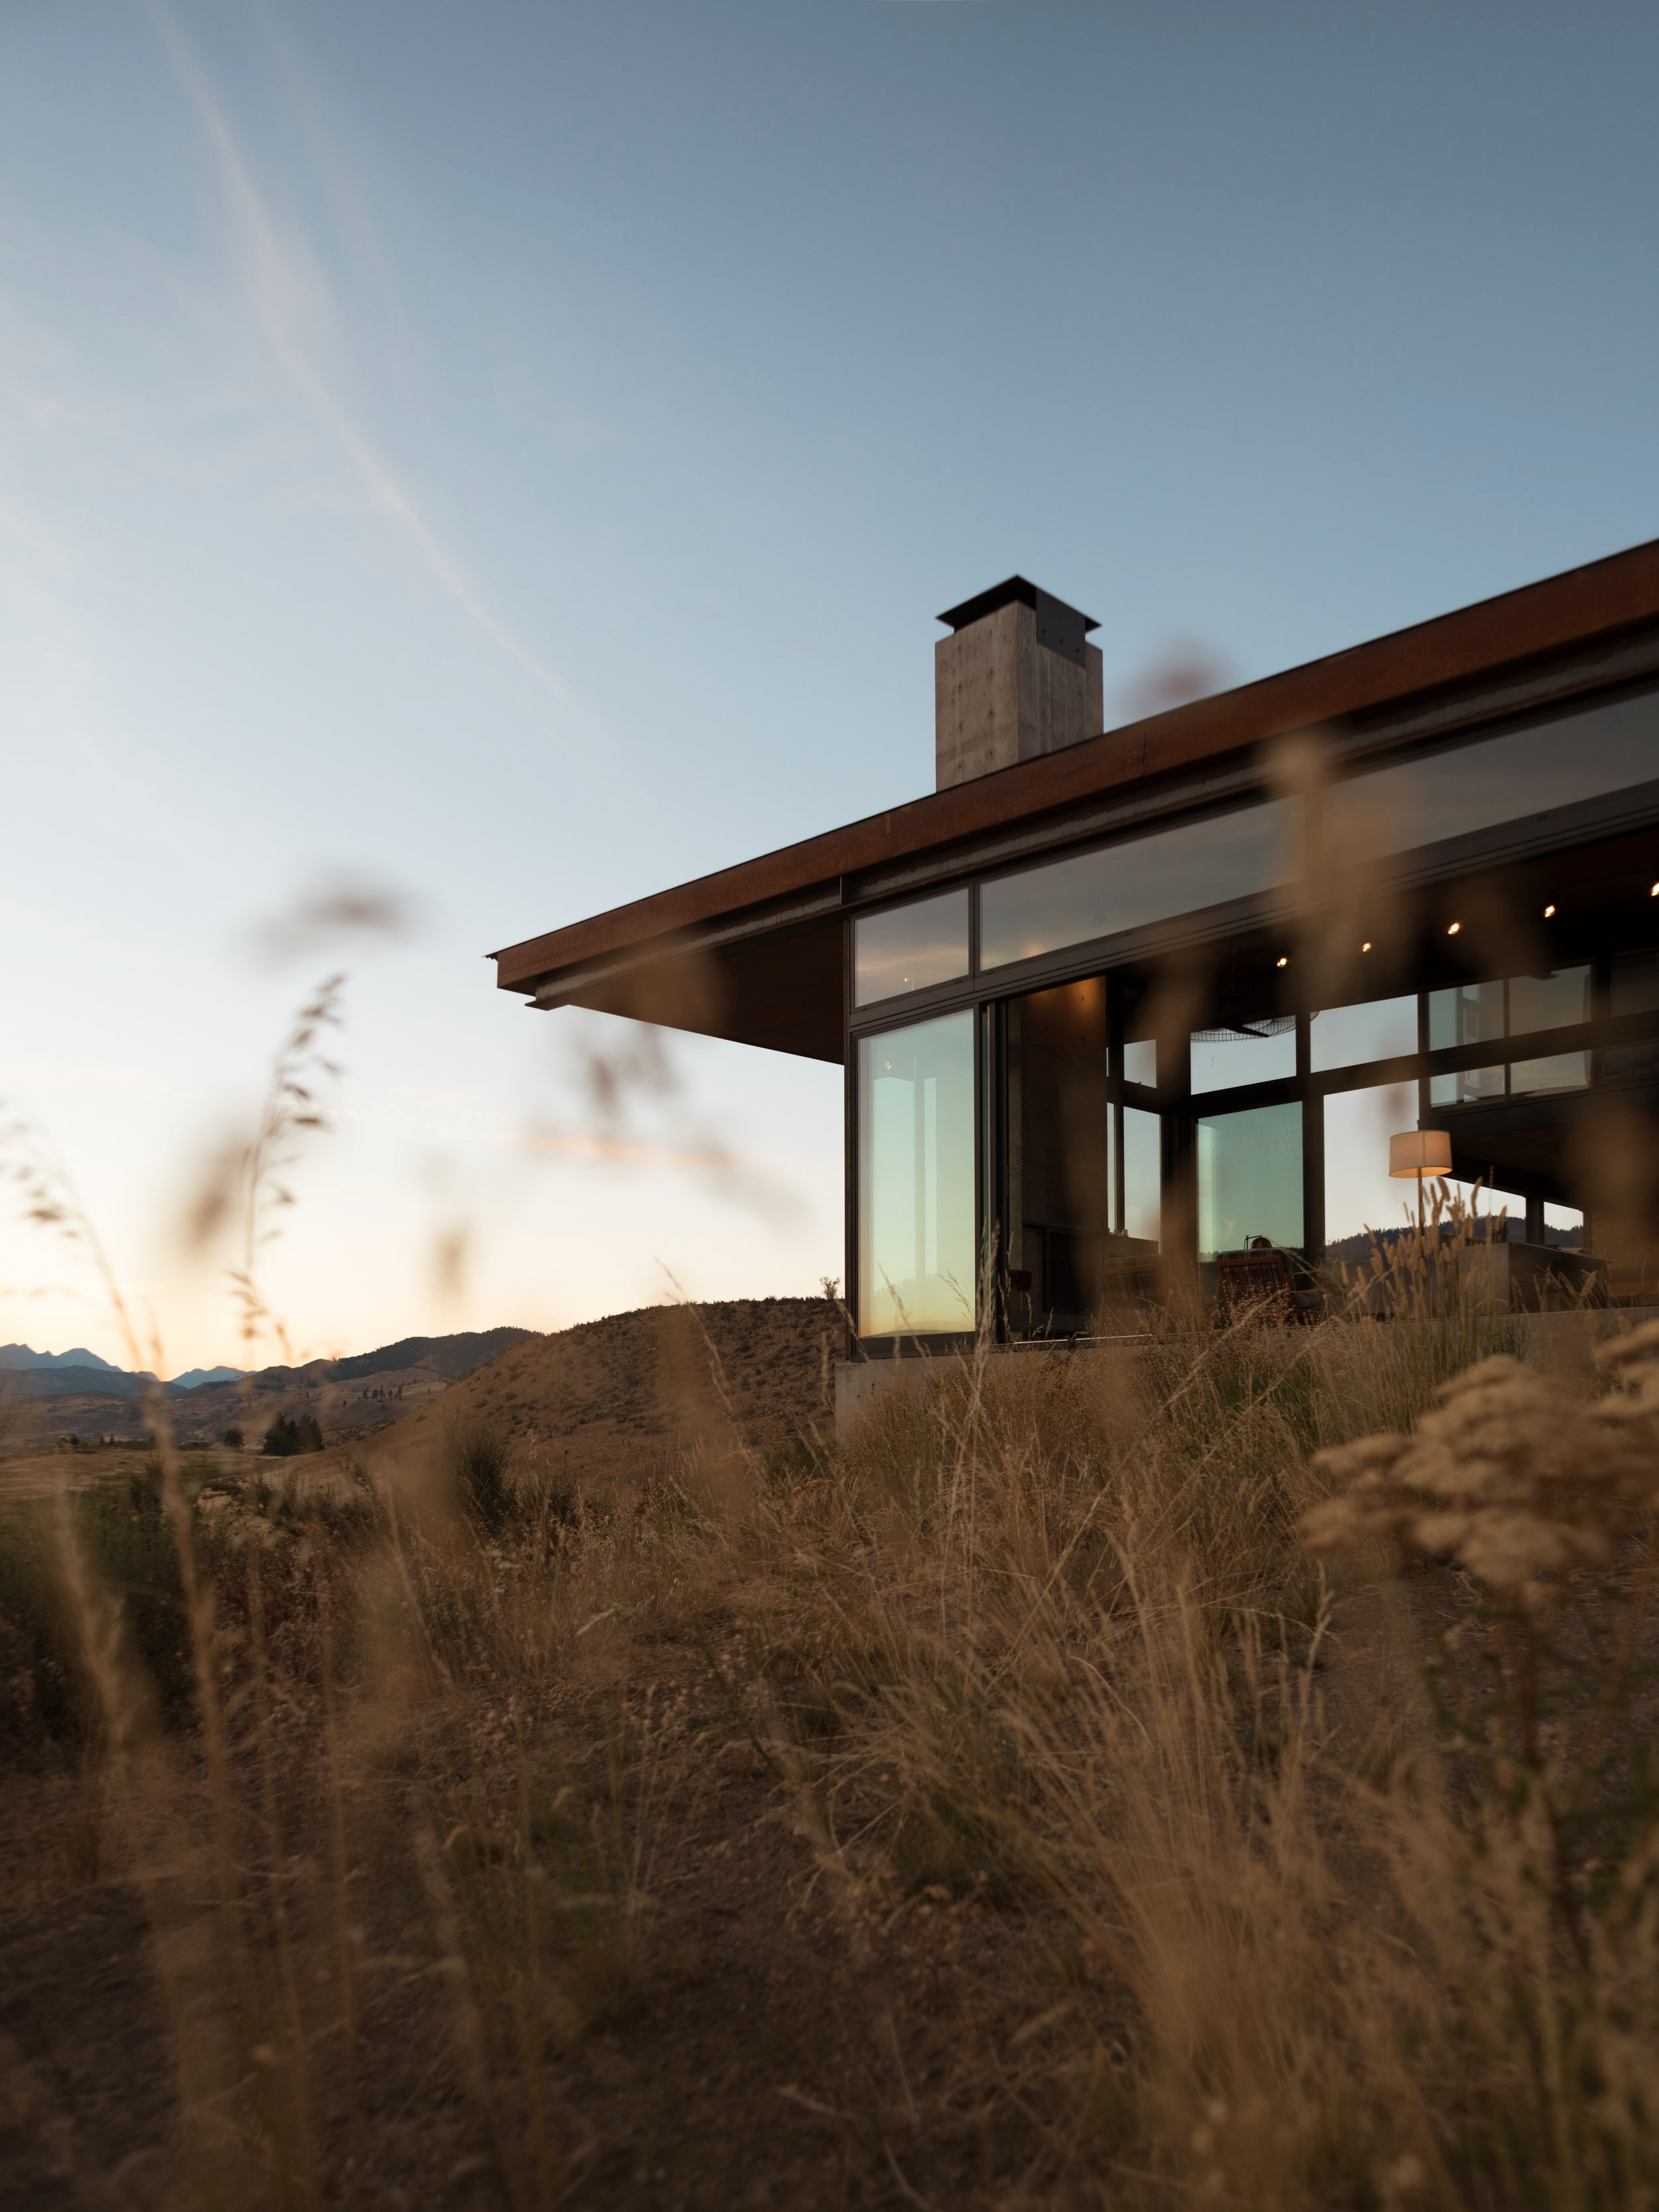 Copy of Stud Horse Residence by Olson Kundig Architects